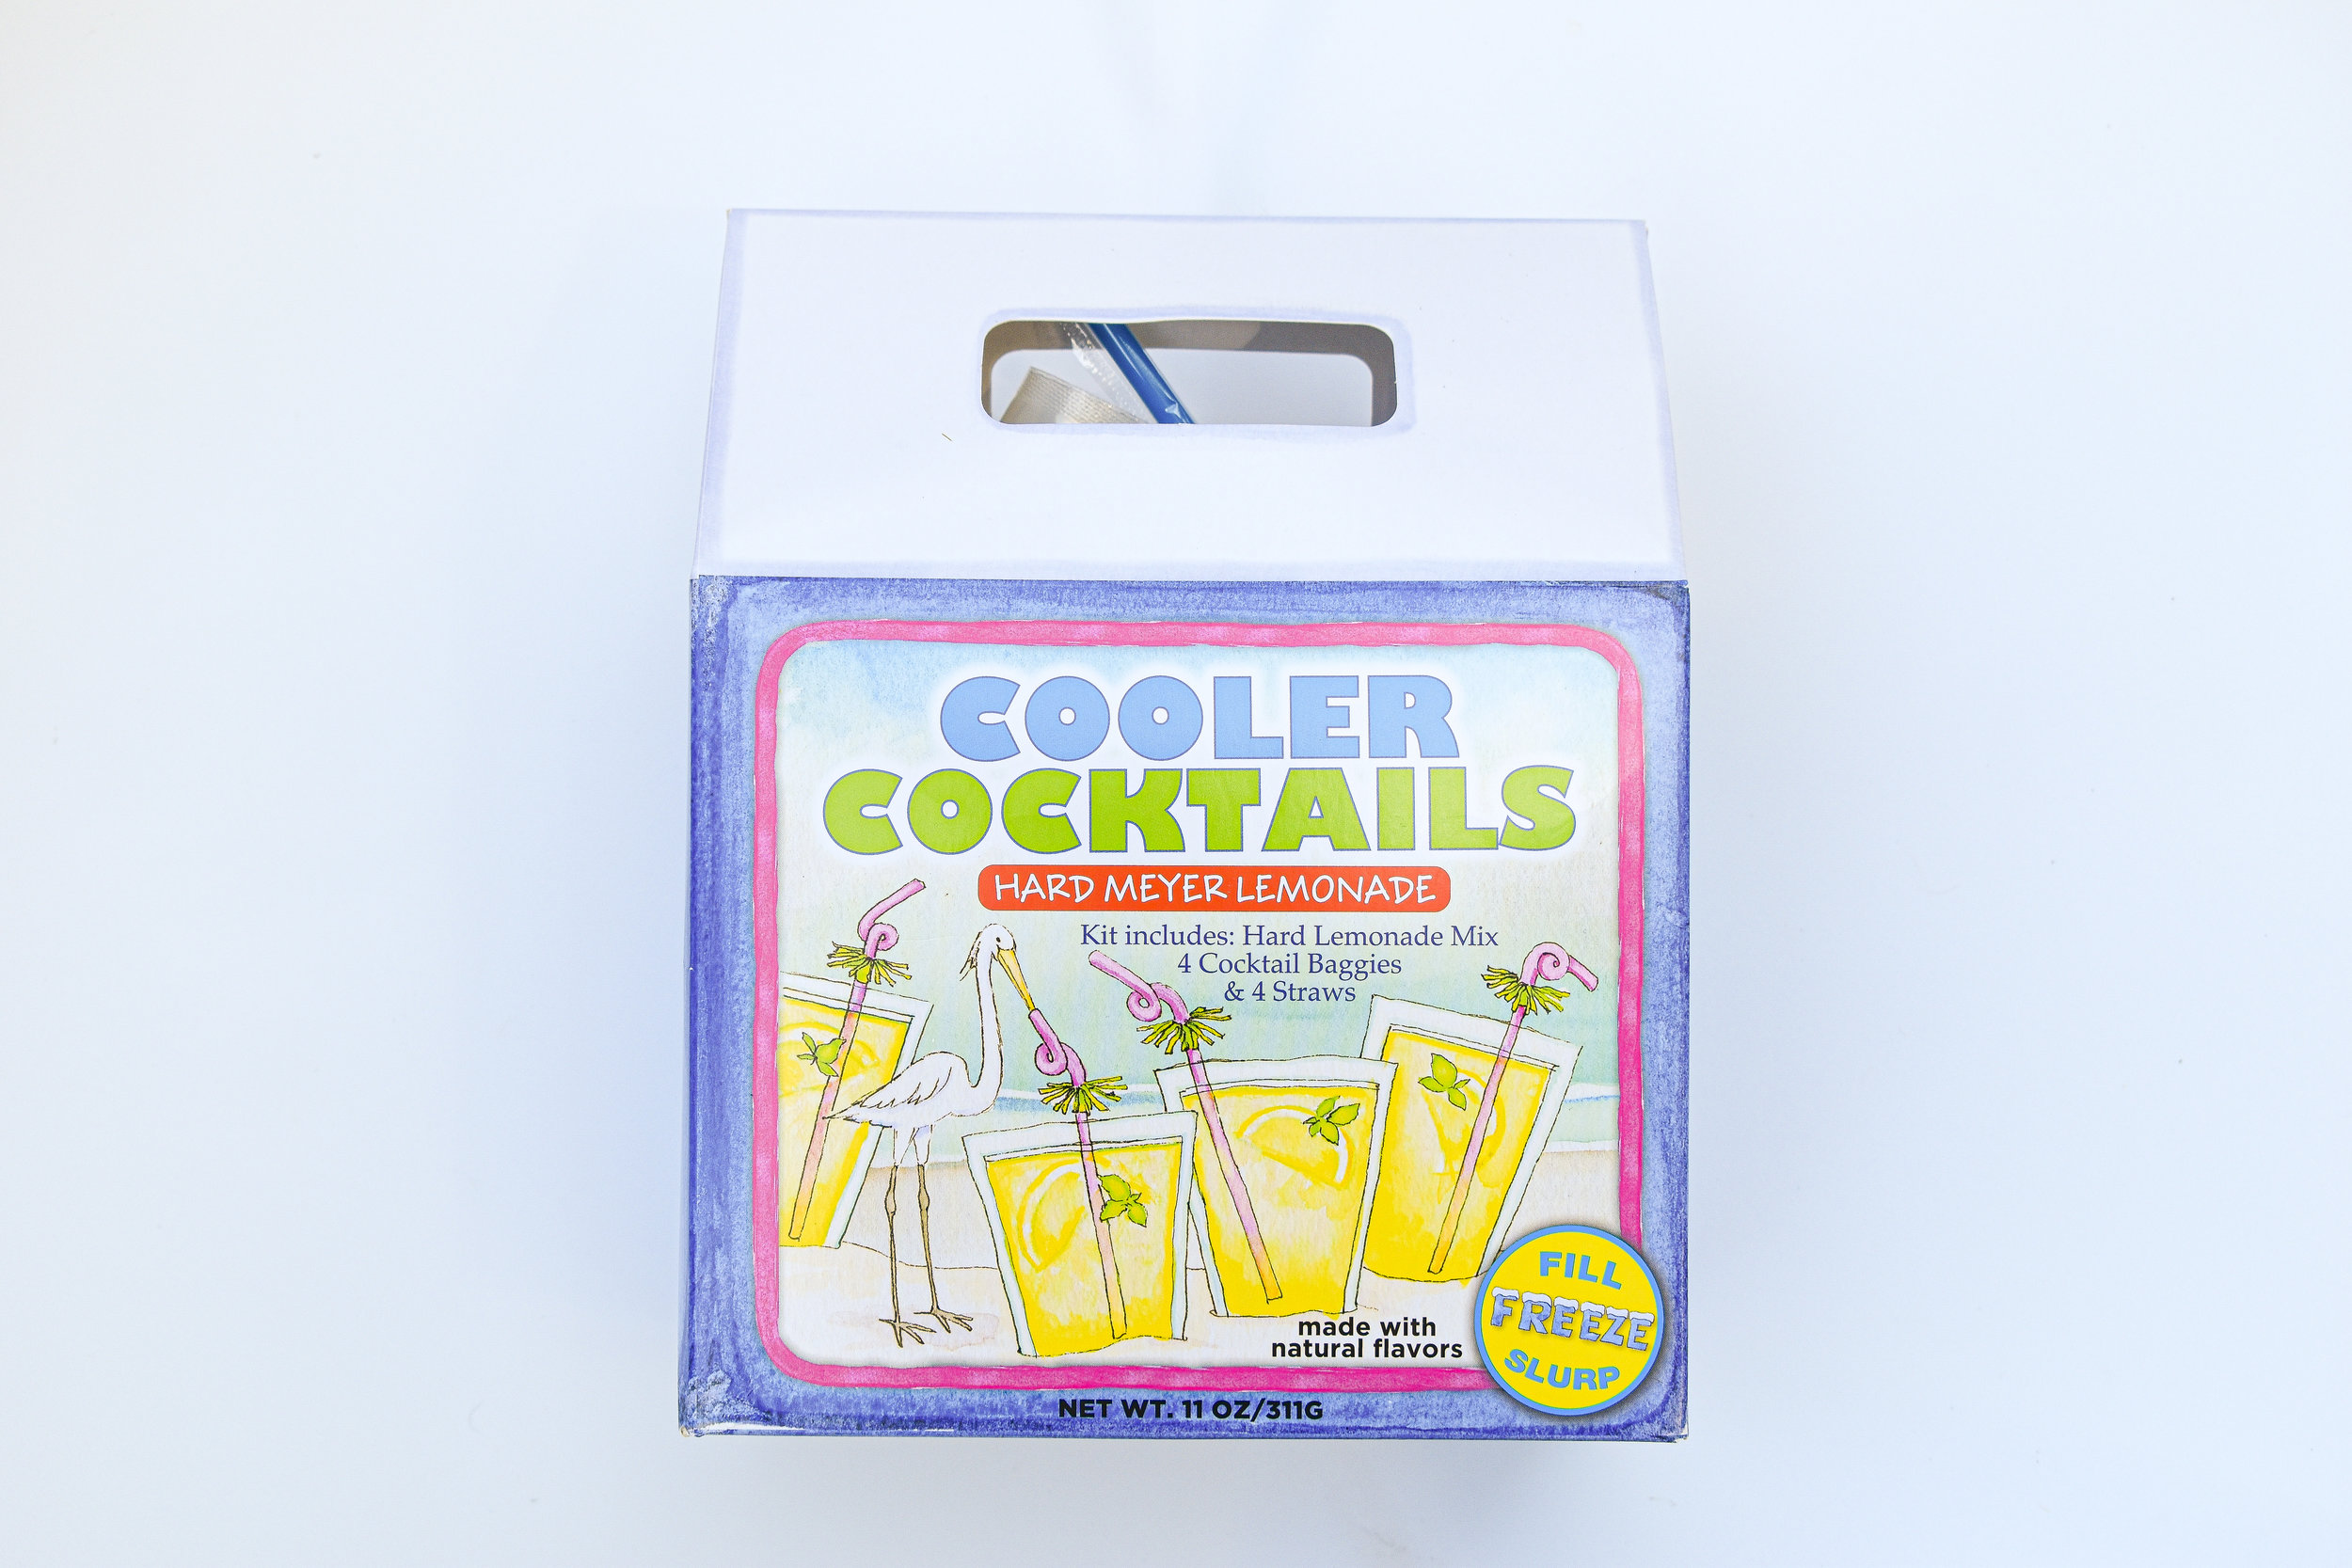 But wait, the cool factor just got even better with this hard lemonade kit! Just add the liquor and you're all set.